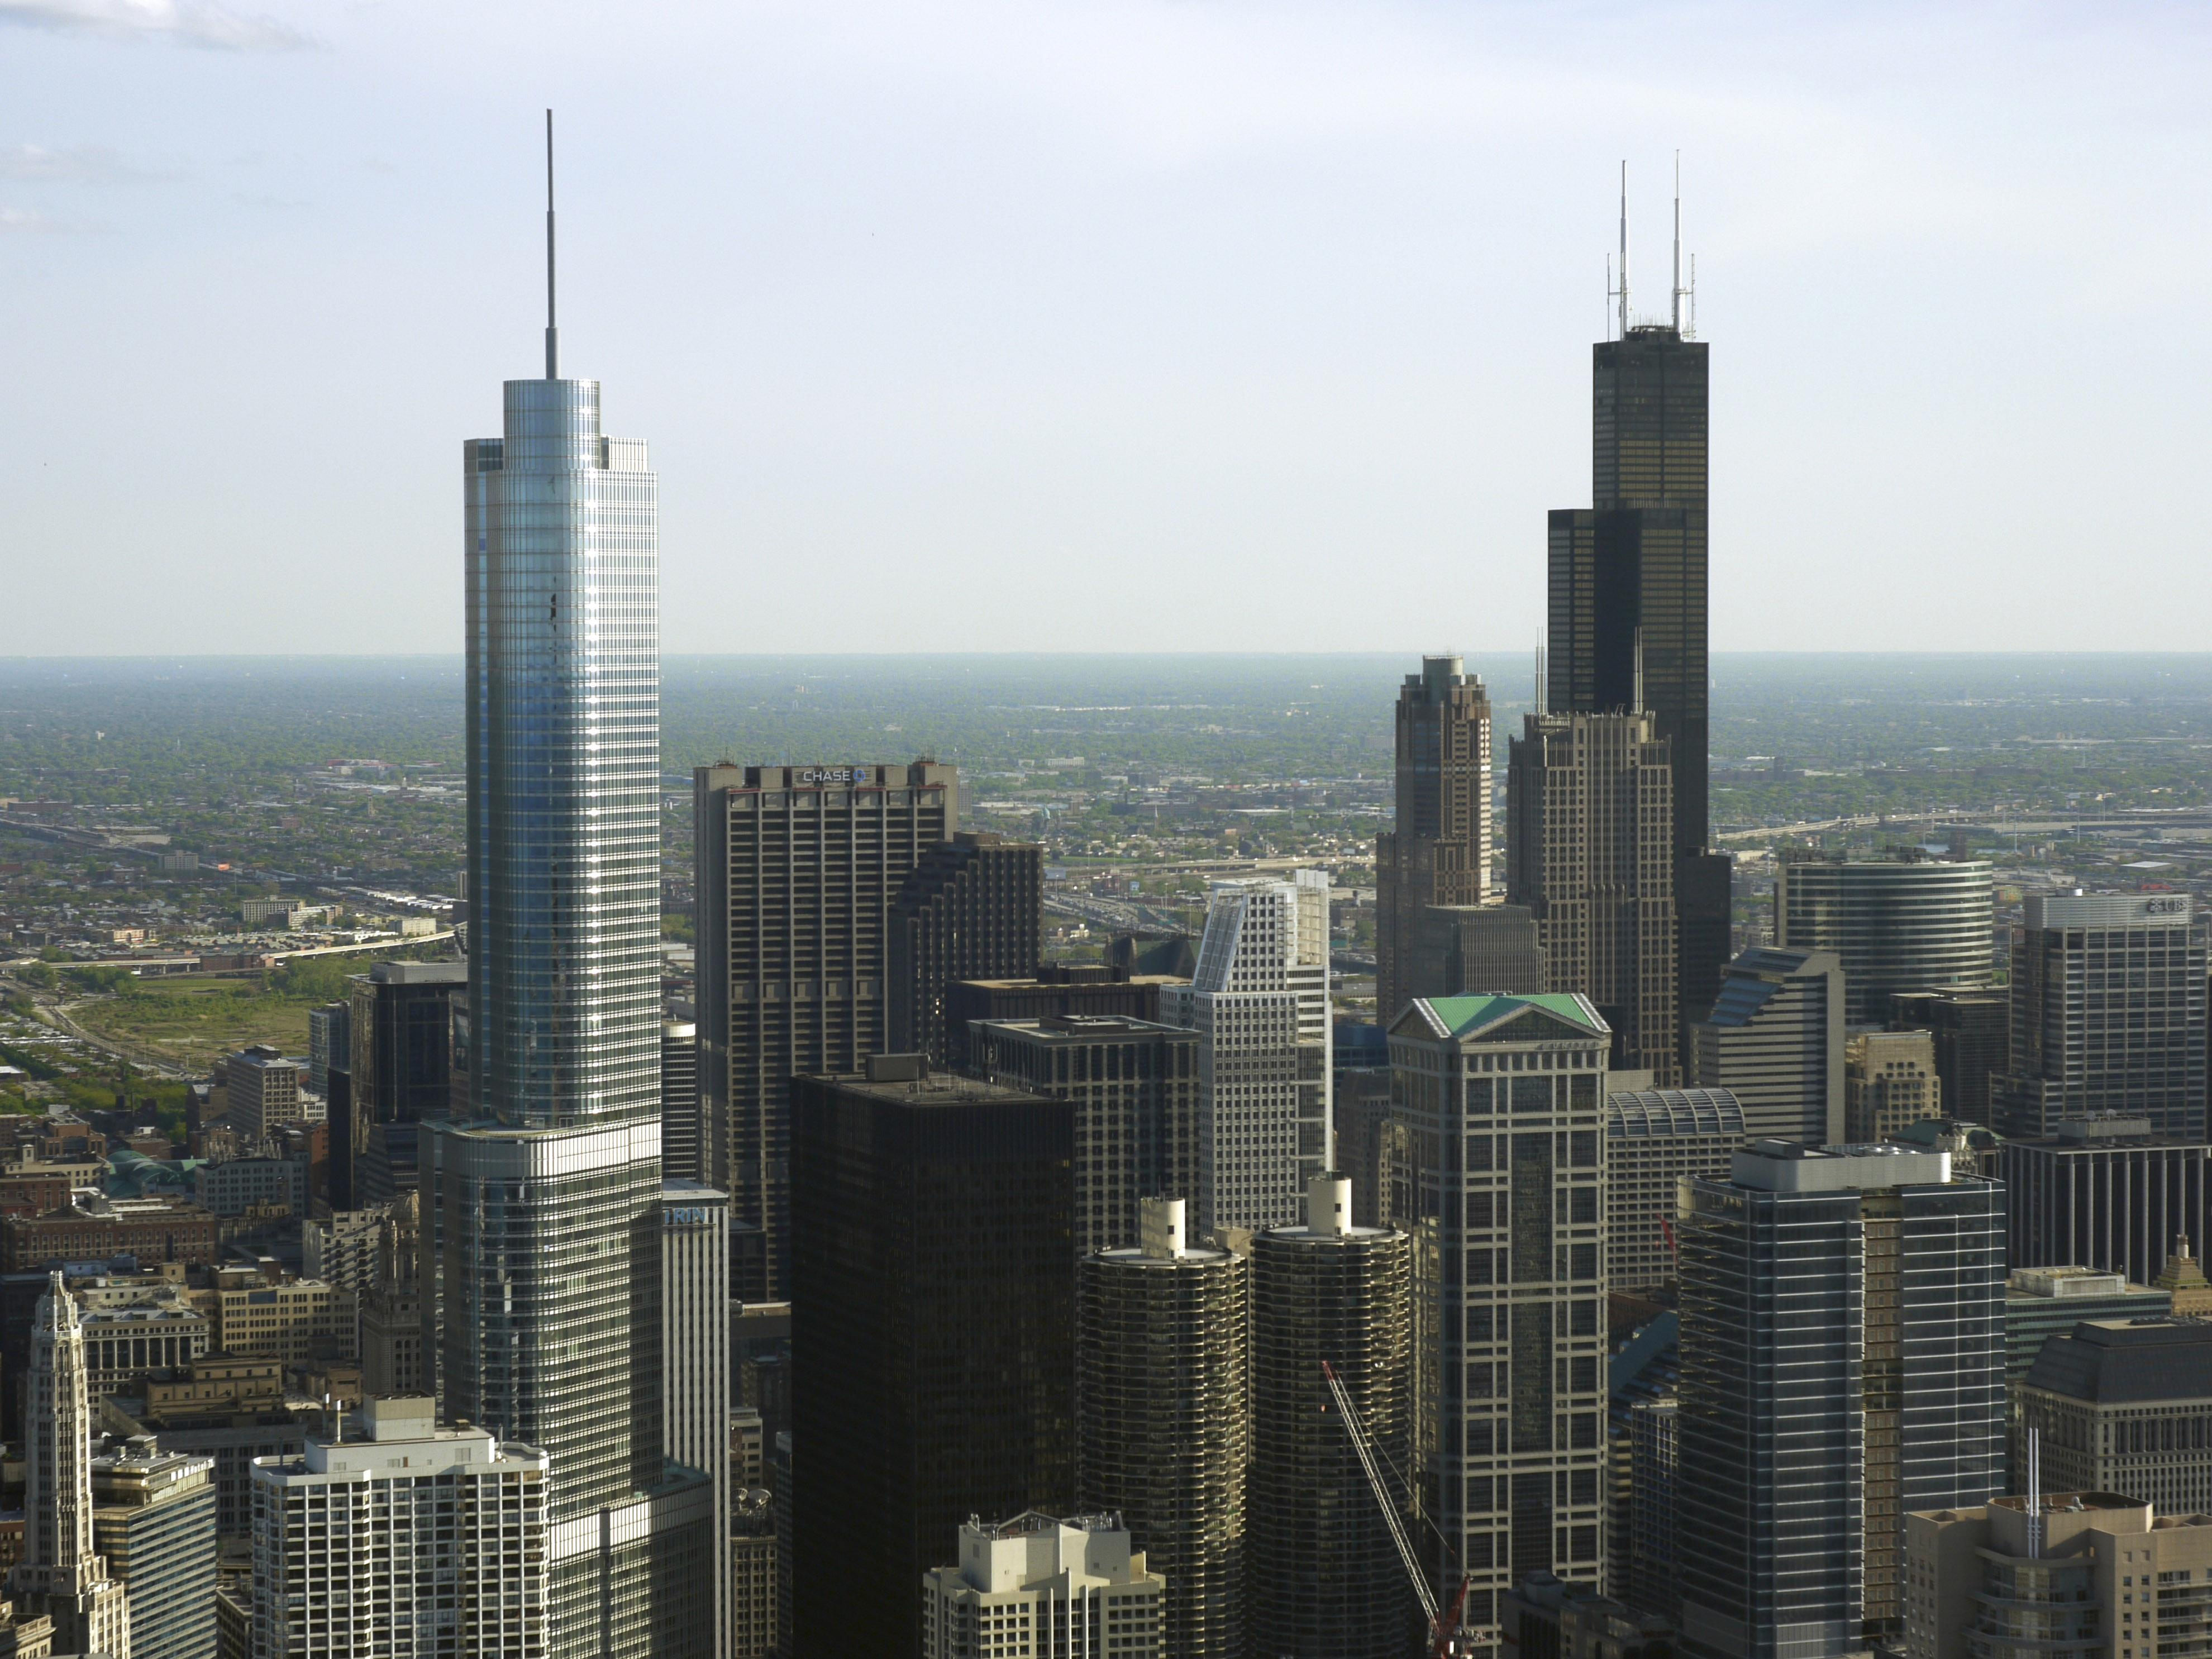 Chicago's Willis Tower, right, scored a 55 on the Environmental Protection Agency's Energy Star rating system. Trump Tower, left, scored a nine. (Chad Kainz / Flickr)